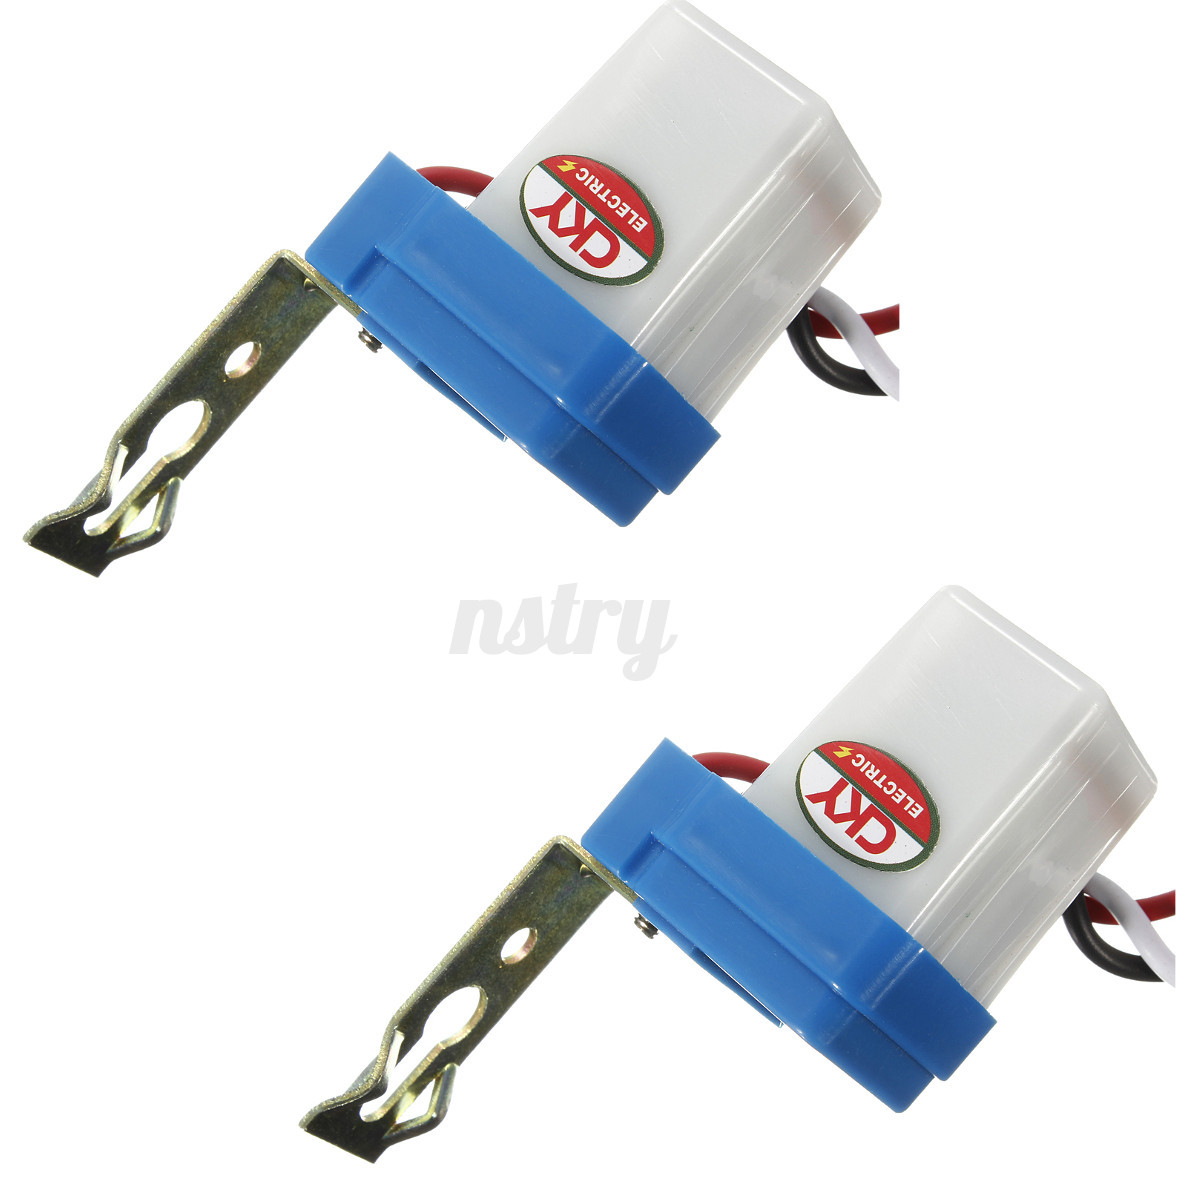 2x auto on off switch control 12v 10a street light photocell rh ebay com